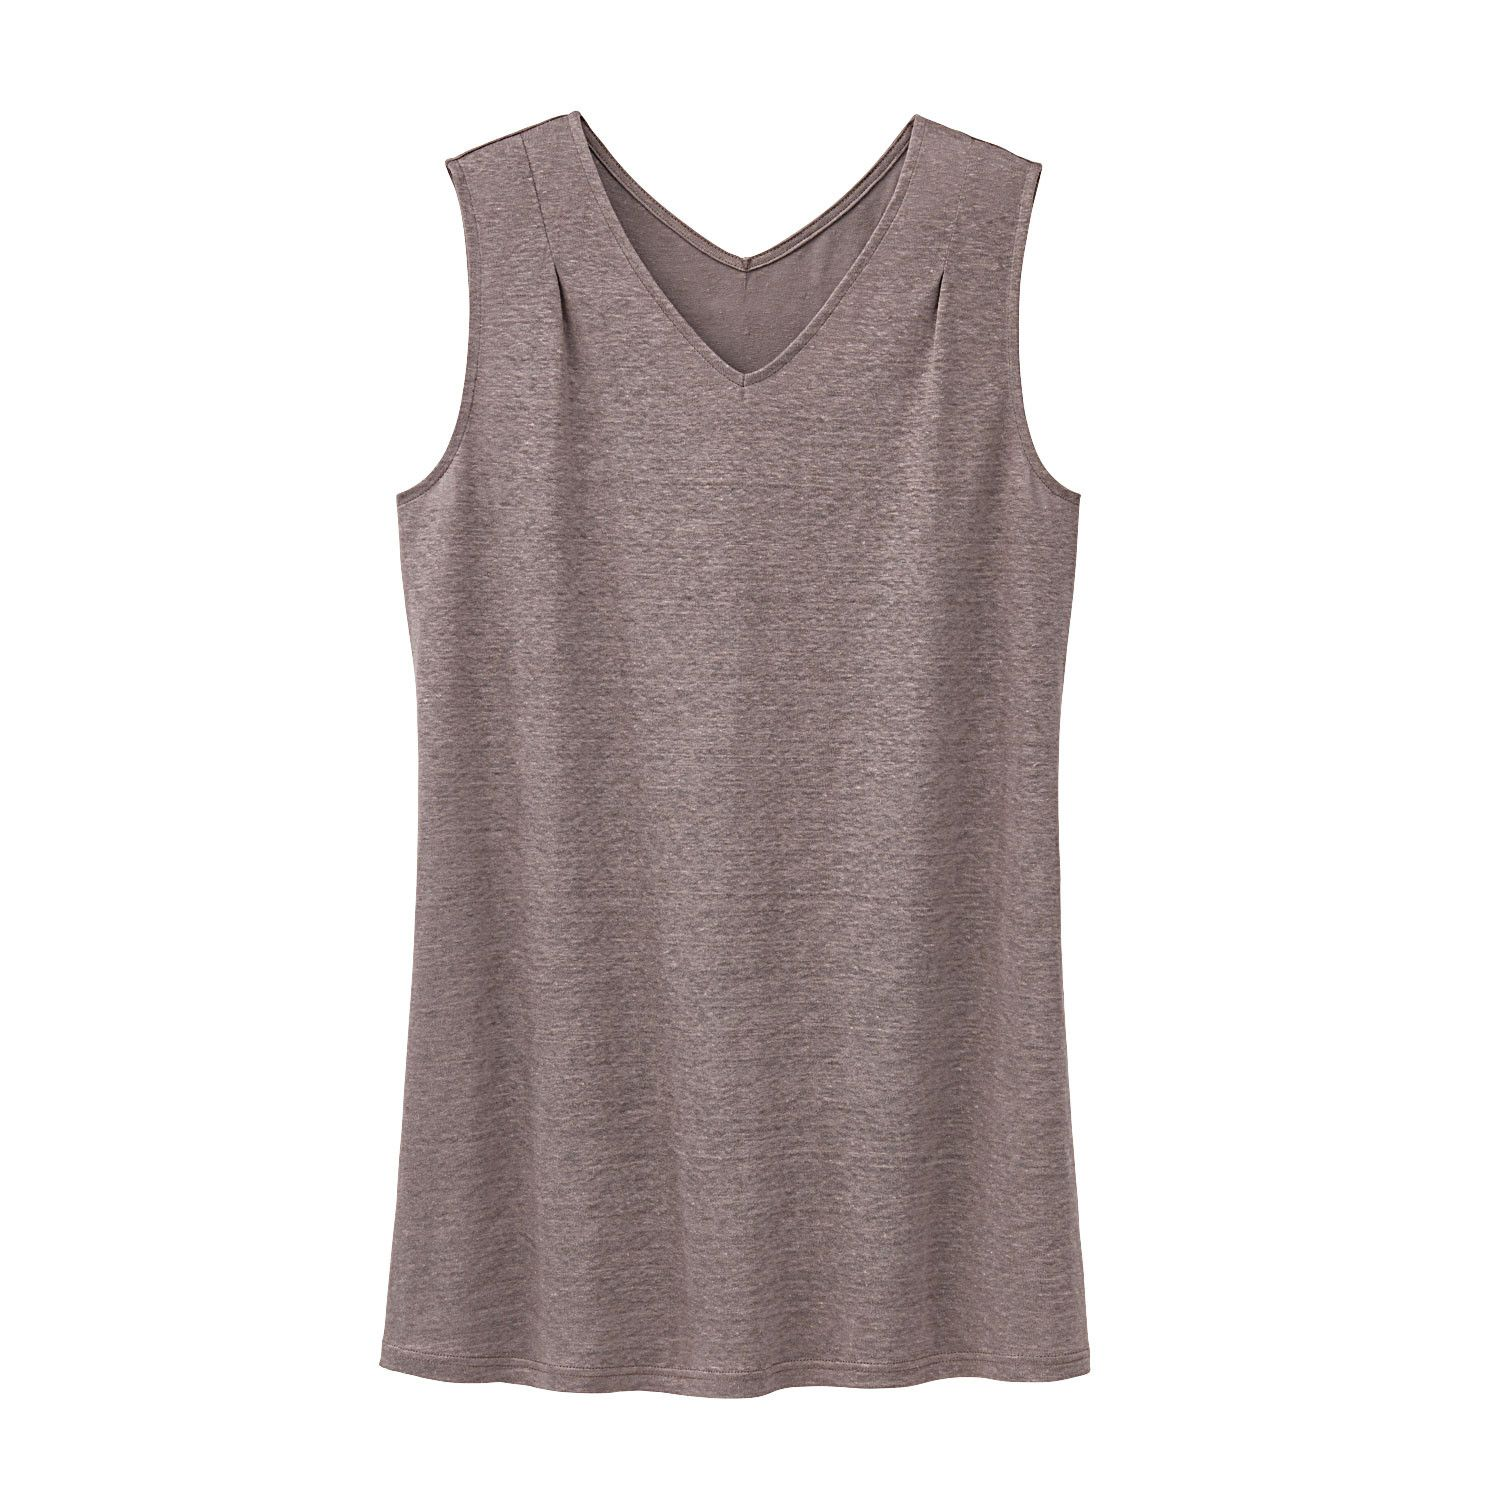 Leinenjersey-Longtop, taupe